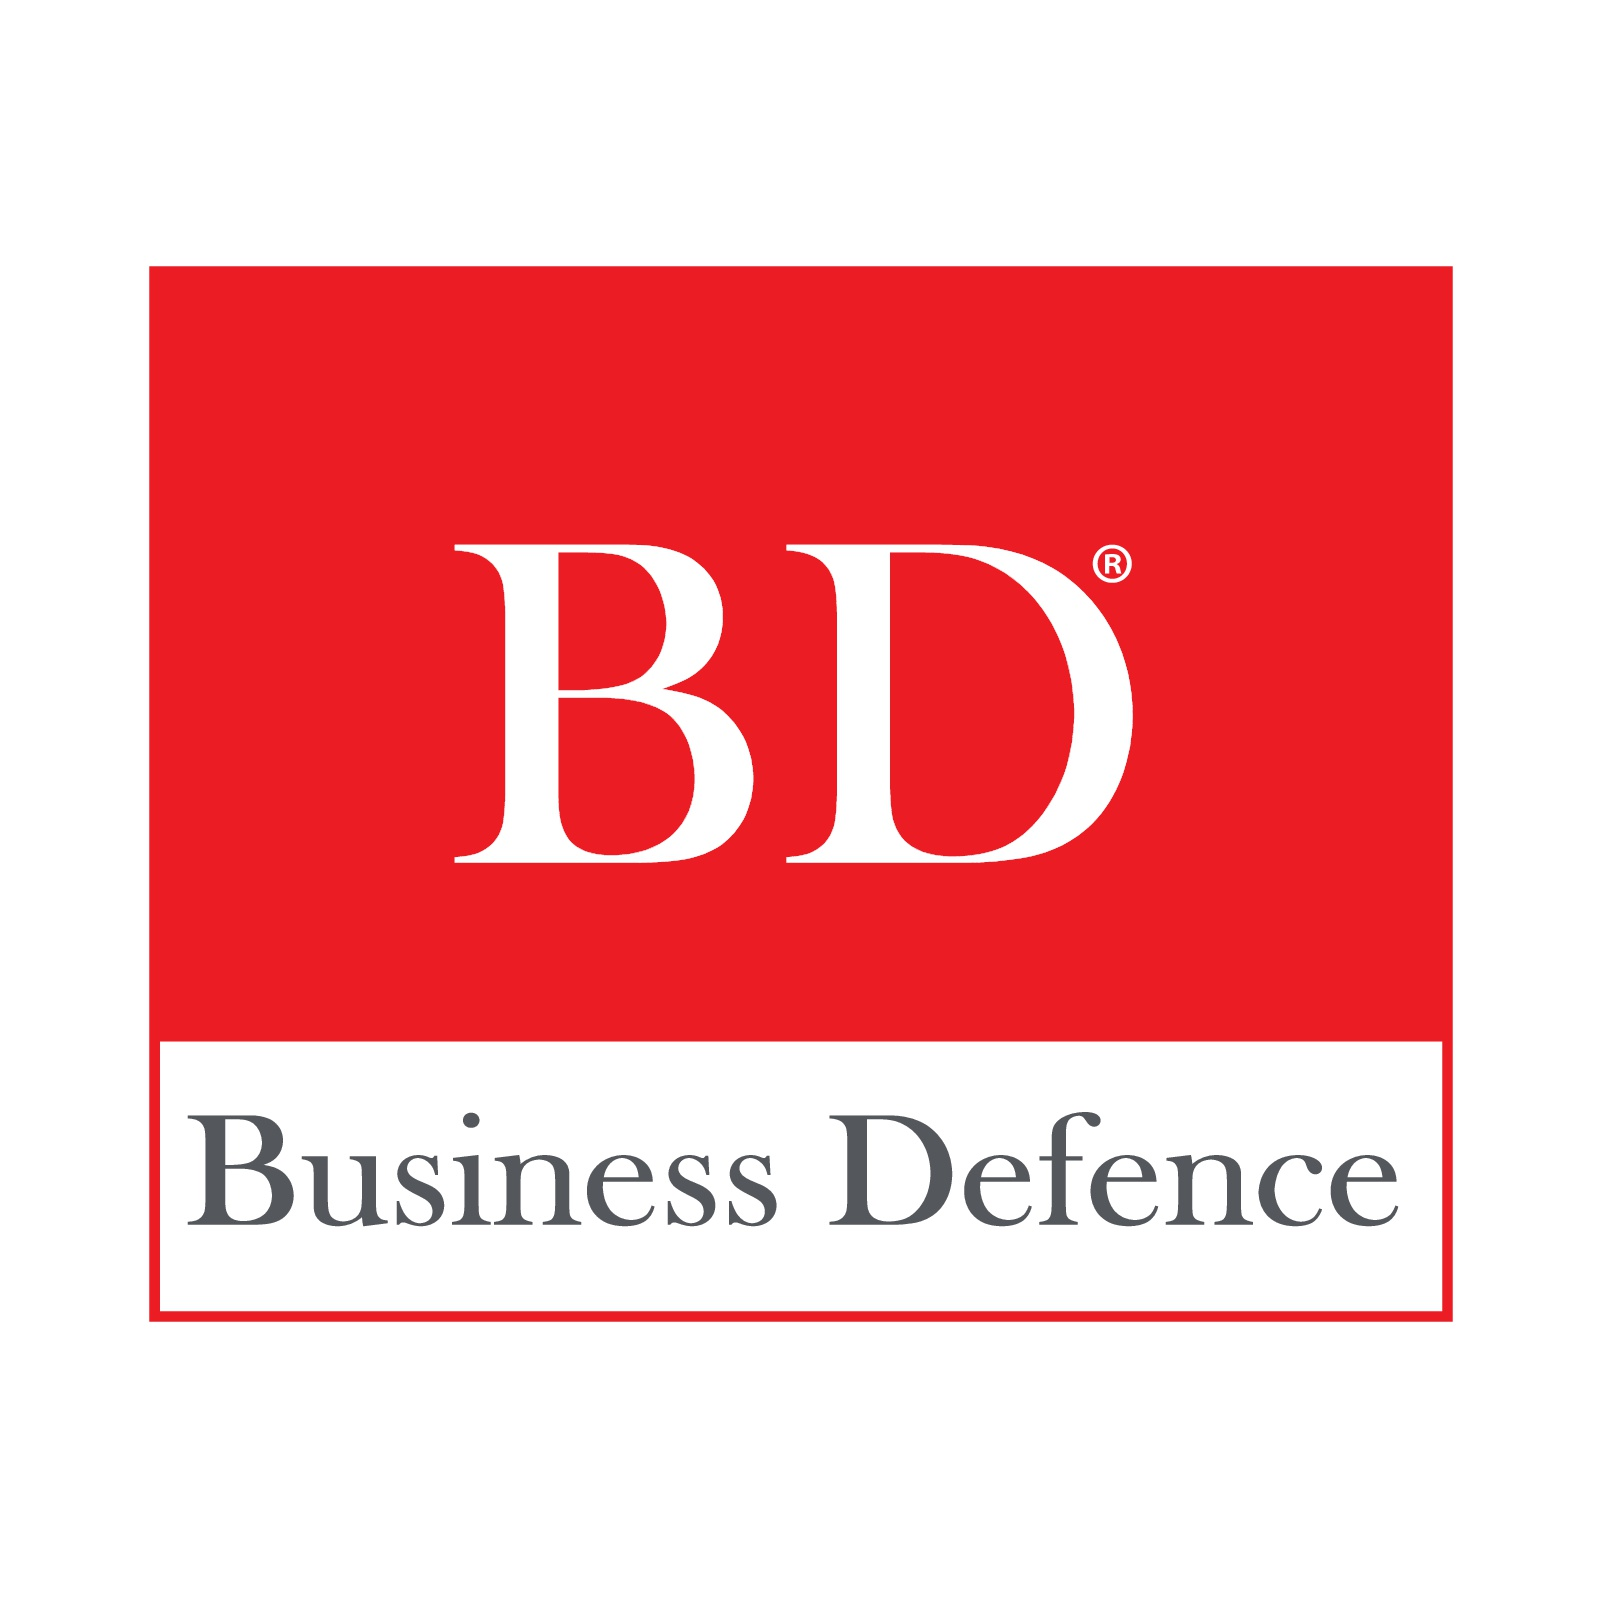 BusinessDefence